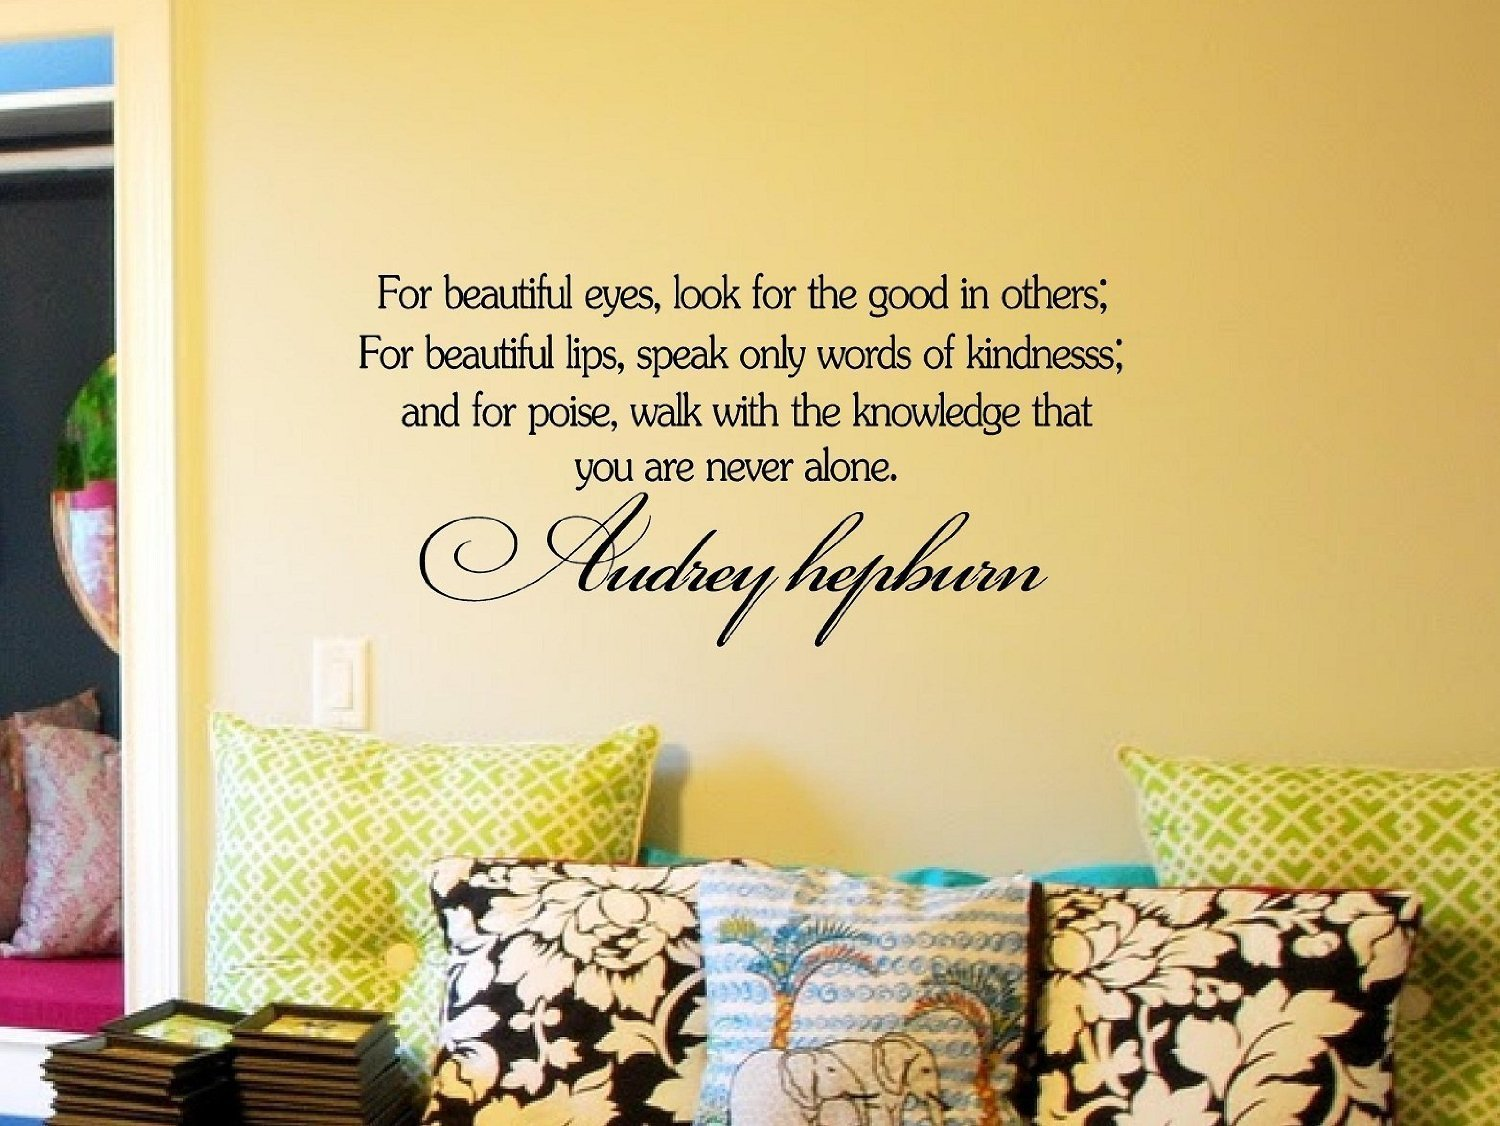 Decalgeek Audrey Hepburn Inspirational Quotes Vinyl Wall Art Decal Sticker      Amazon.com